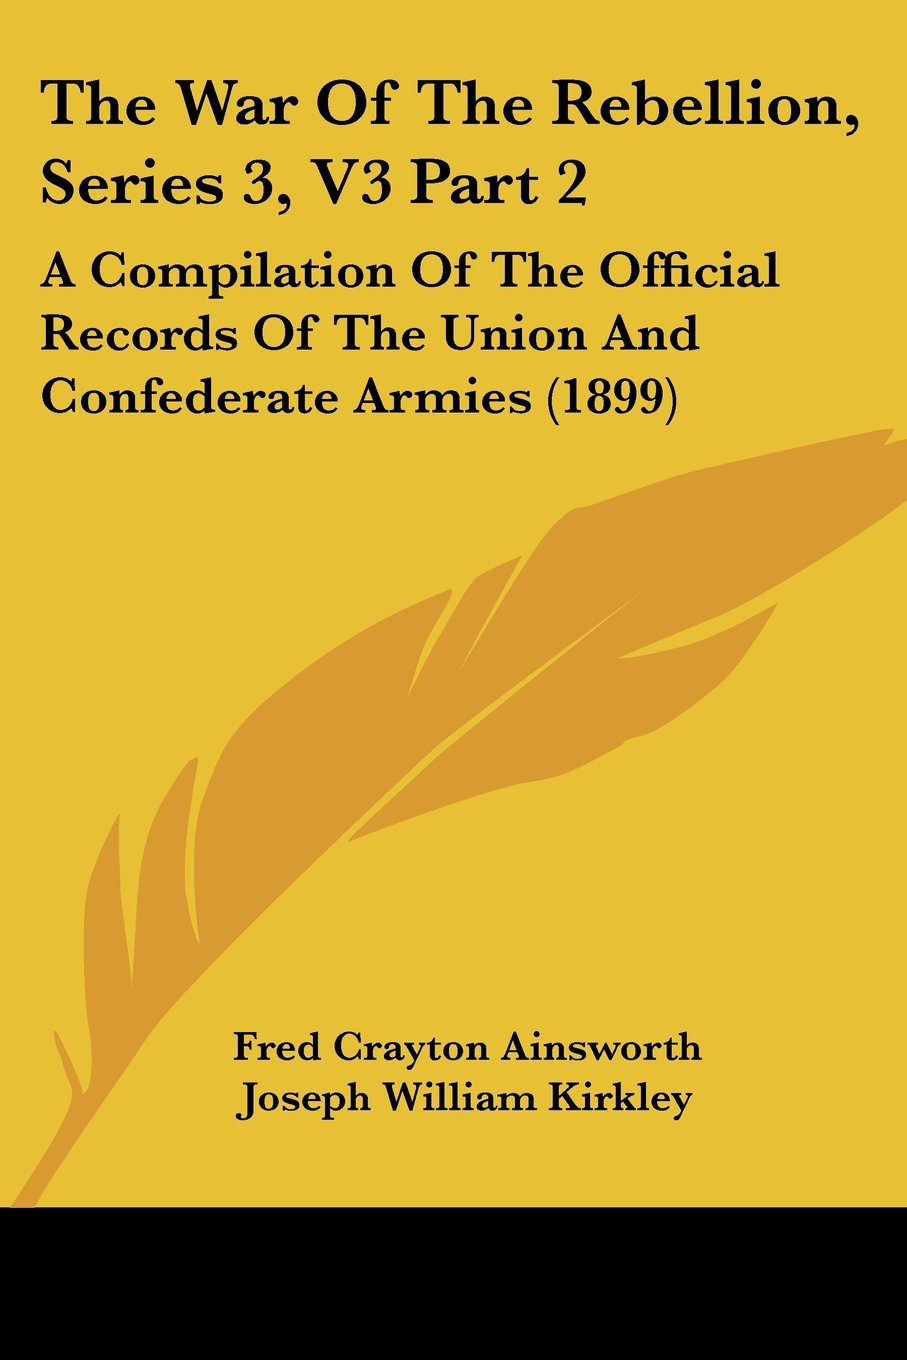 Read Online The War Of The Rebellion, Series 3, V3 Part 2: A Compilation Of The Official Records Of The Union And Confederate Armies (1899) PDF